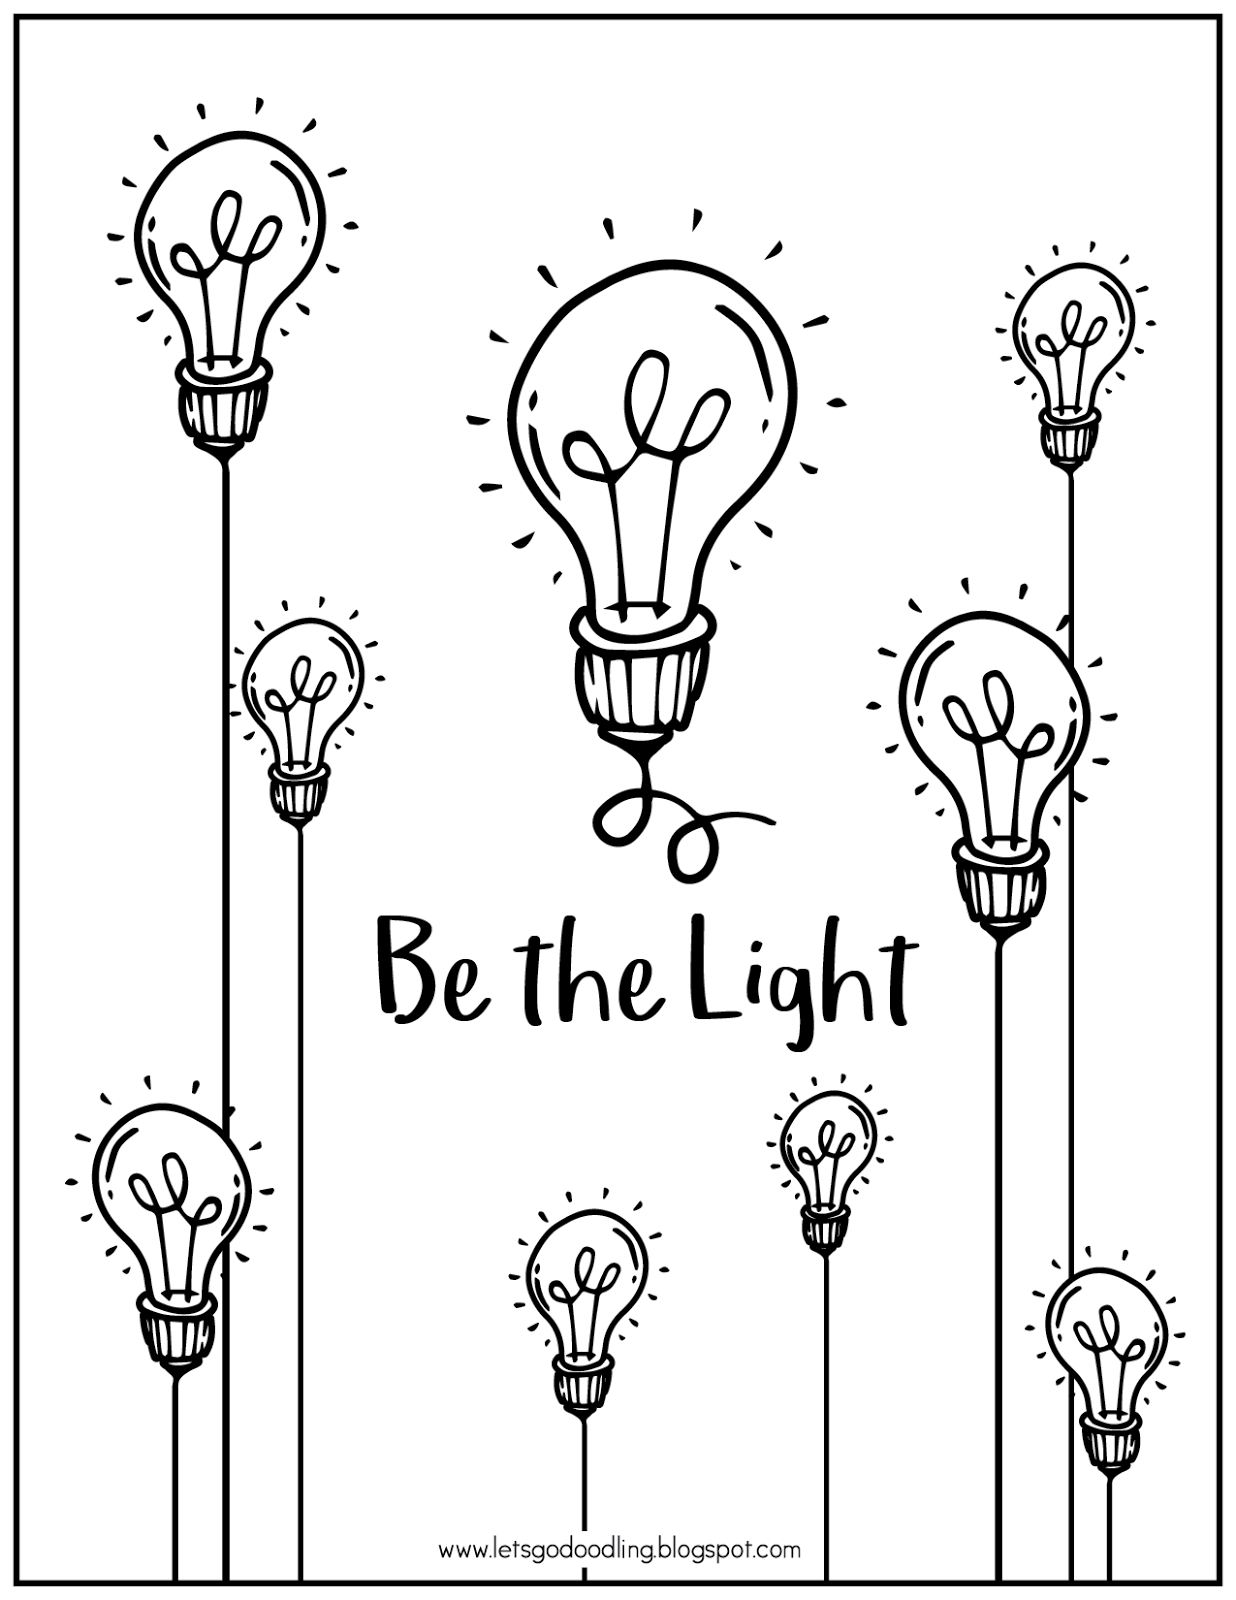 How To Draw A Light Bulb Easy Step By Step